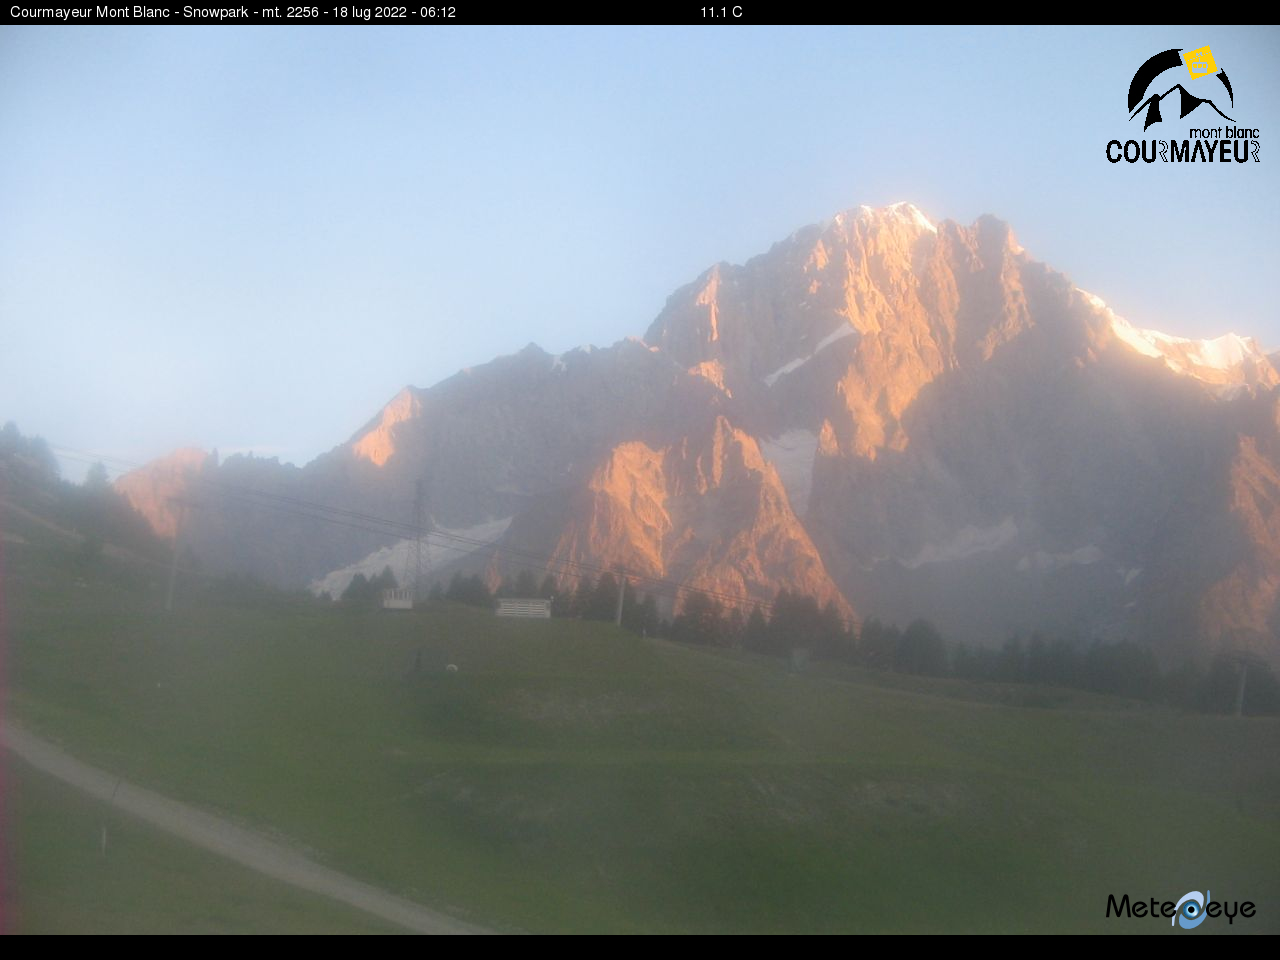 Webcam snowpark Courmayeur 2256m